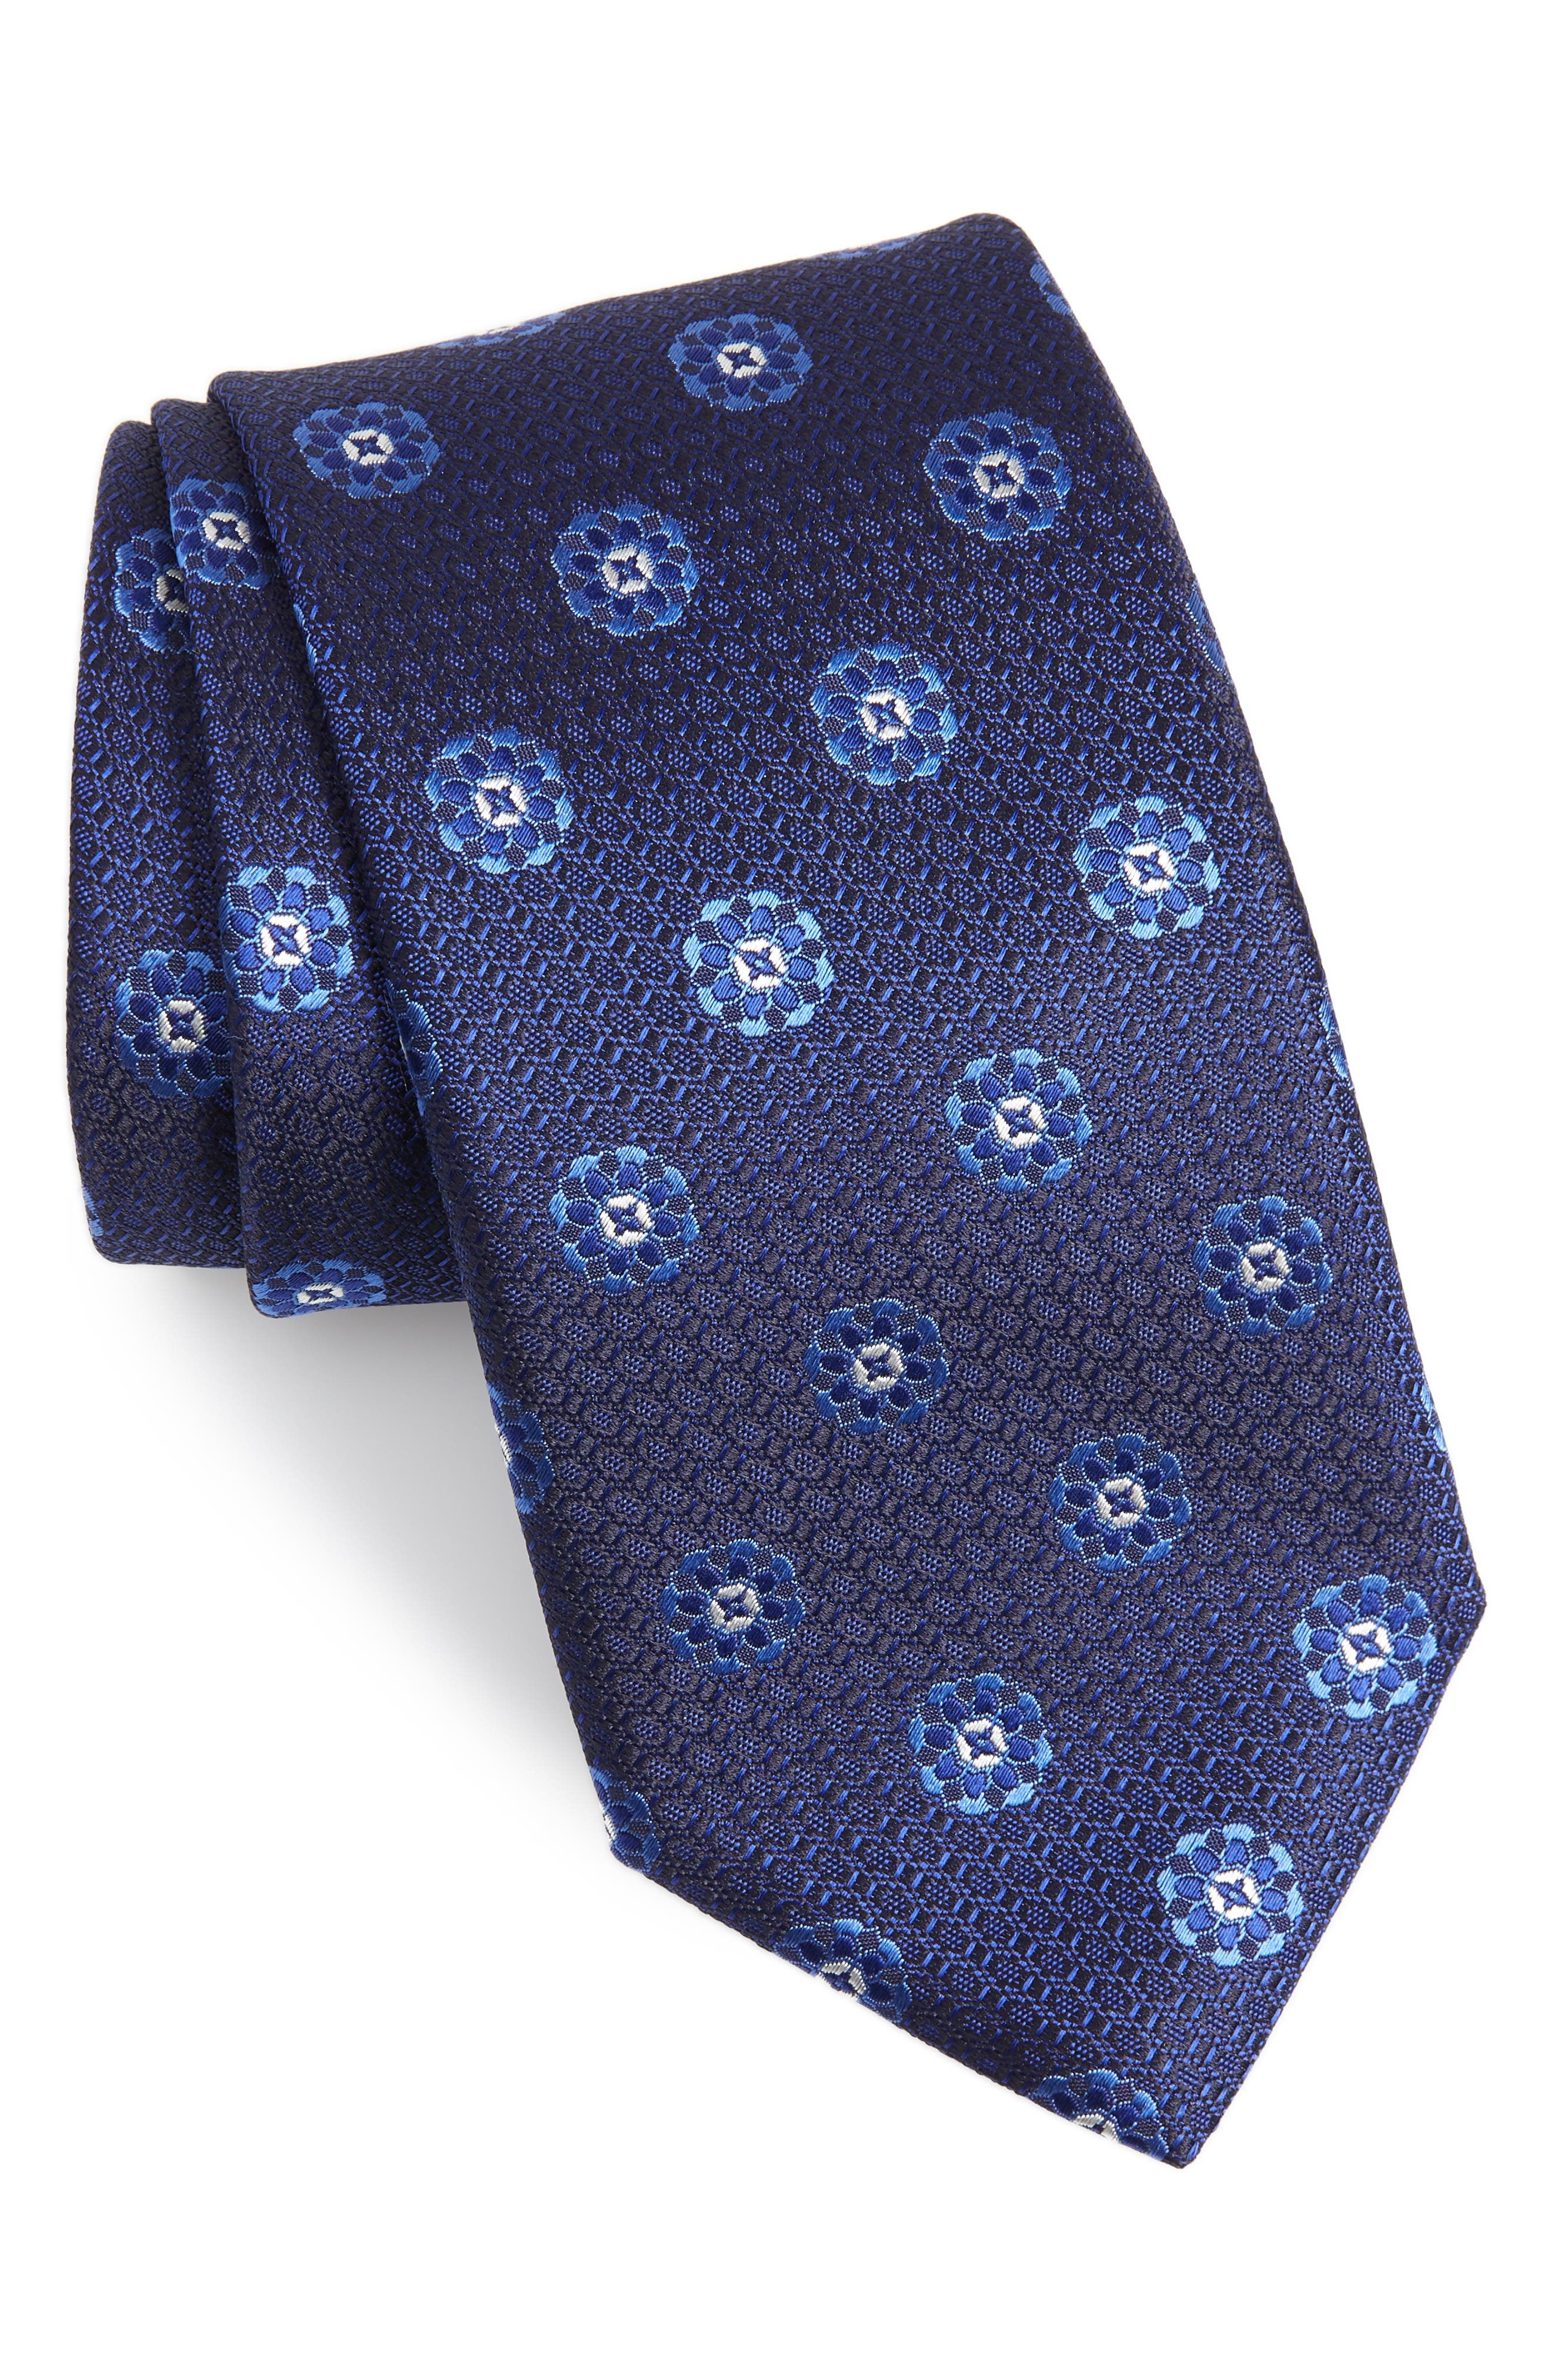 CANALI Medallion Silk Tie, Main, color, NAVY